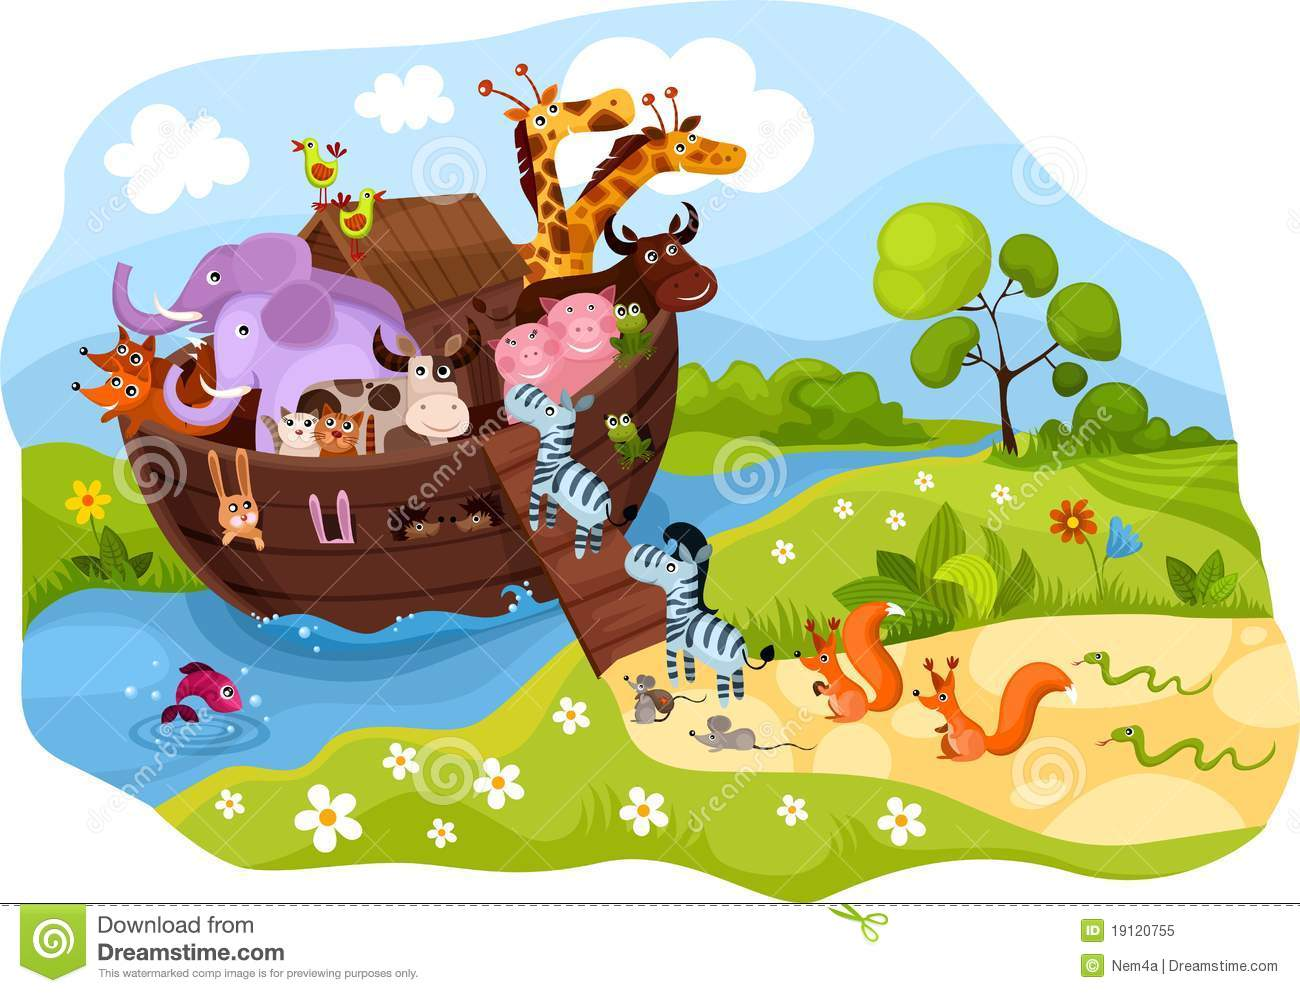 Noah's Ark Royalty Free Stock Photo - Image: 19120755